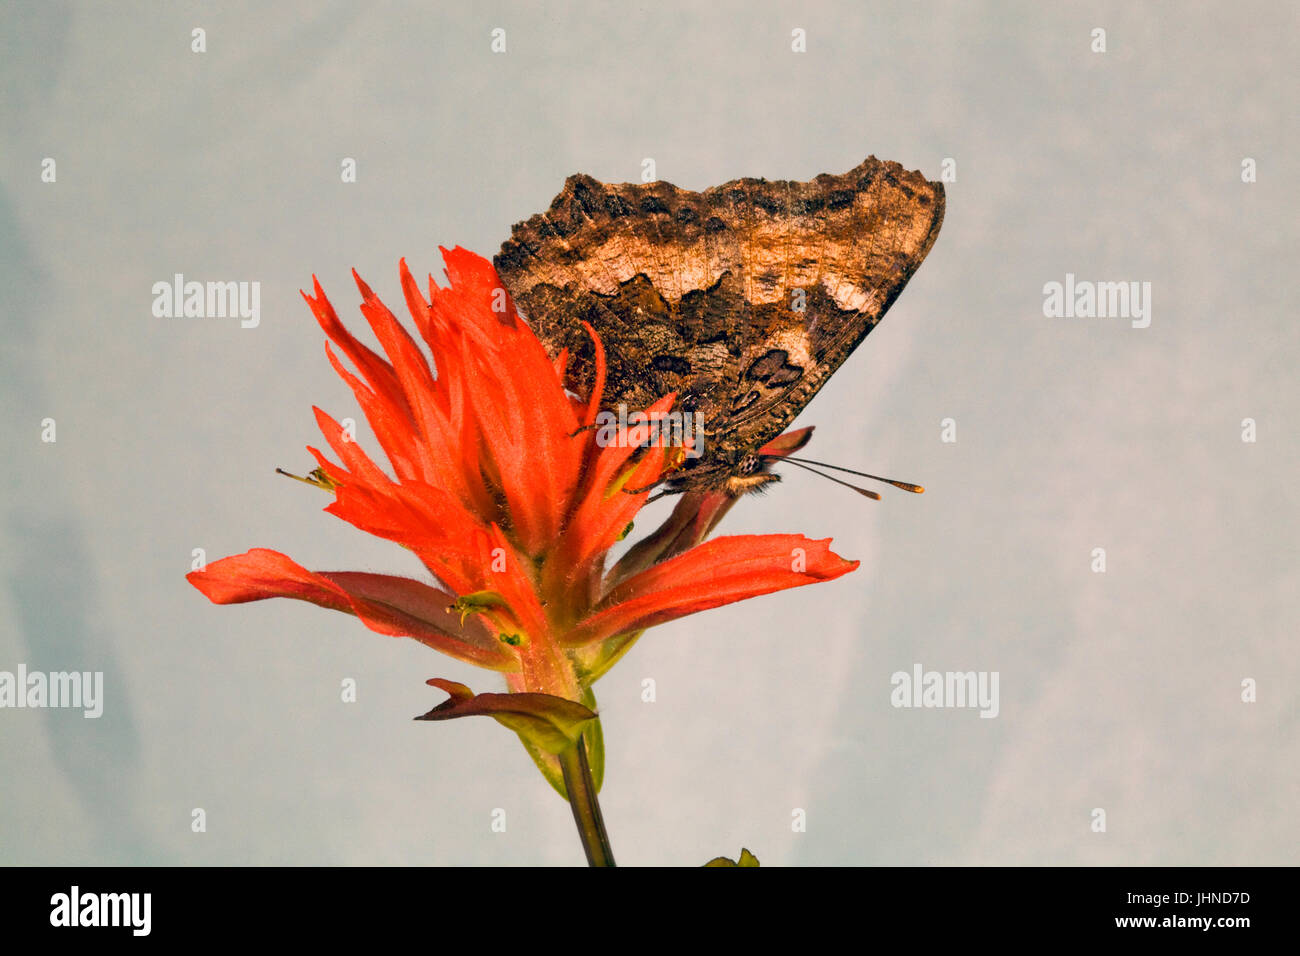 A California Tortiseshell Butterfly, also known as a Western Tortoise Shell, Nymphalis californica, searching for - Stock Image